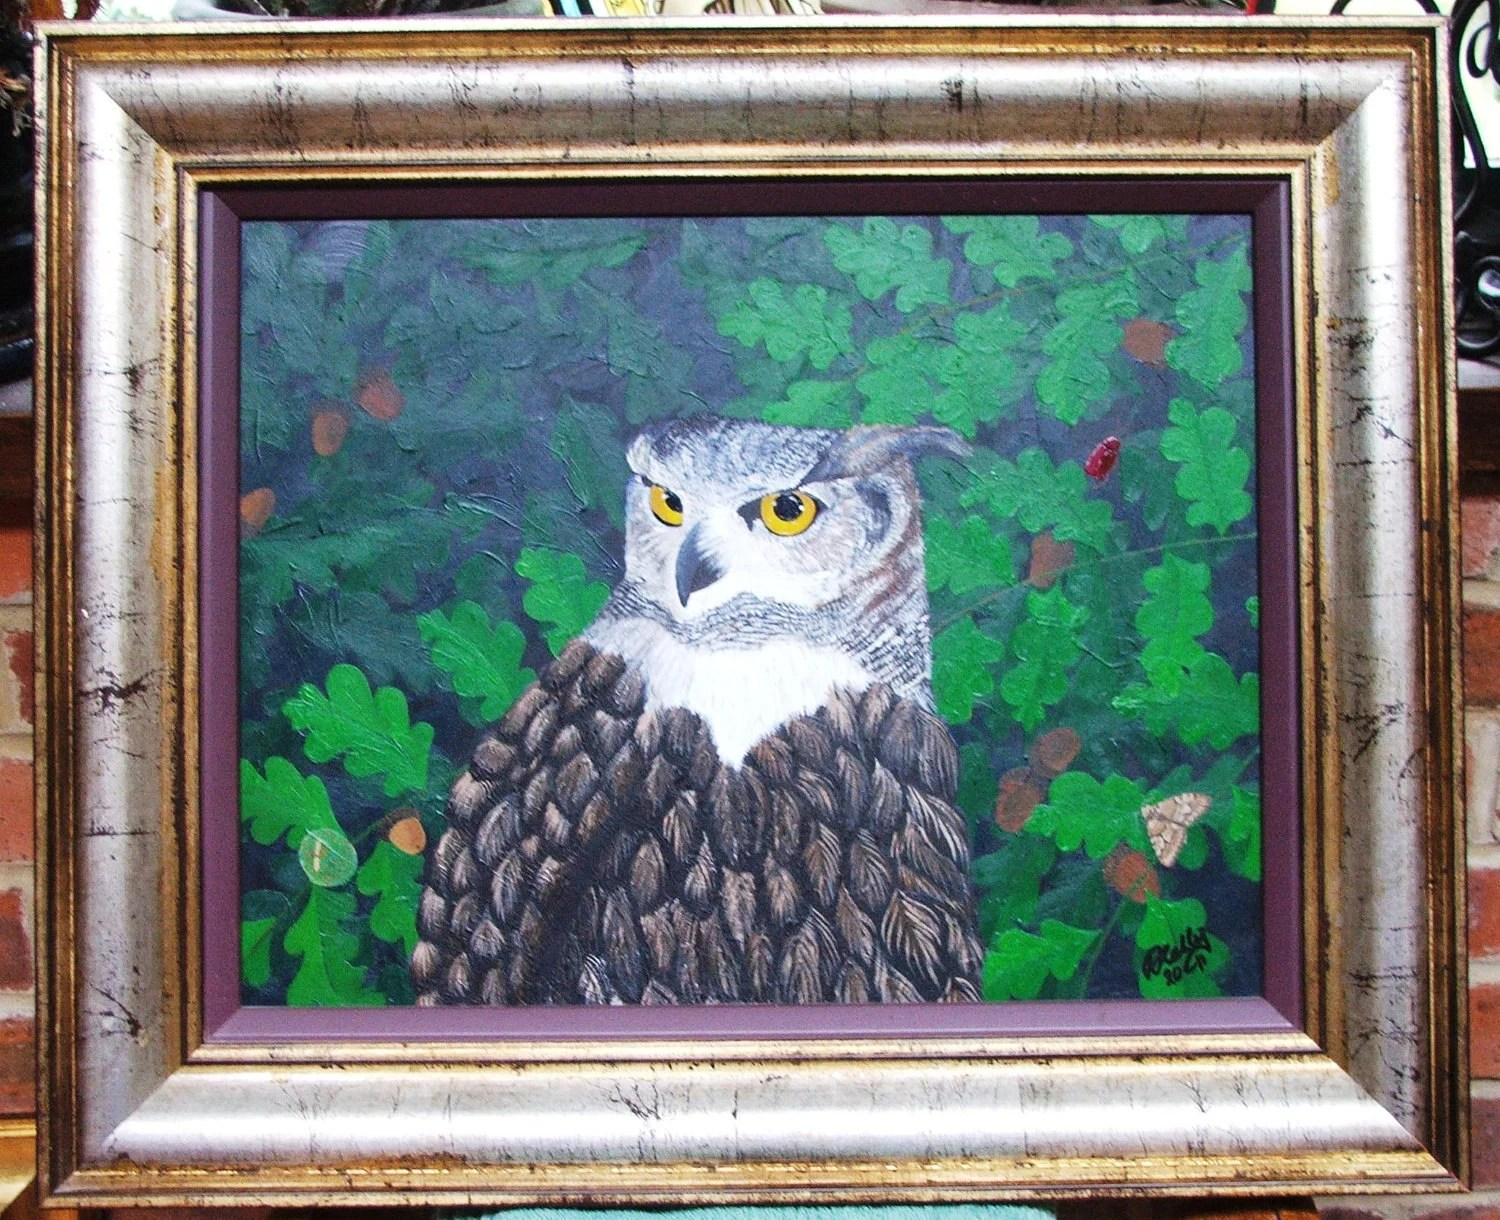 Look Out. Owl and oak leaves original acrylic painting by UK artist Nikki Kelly